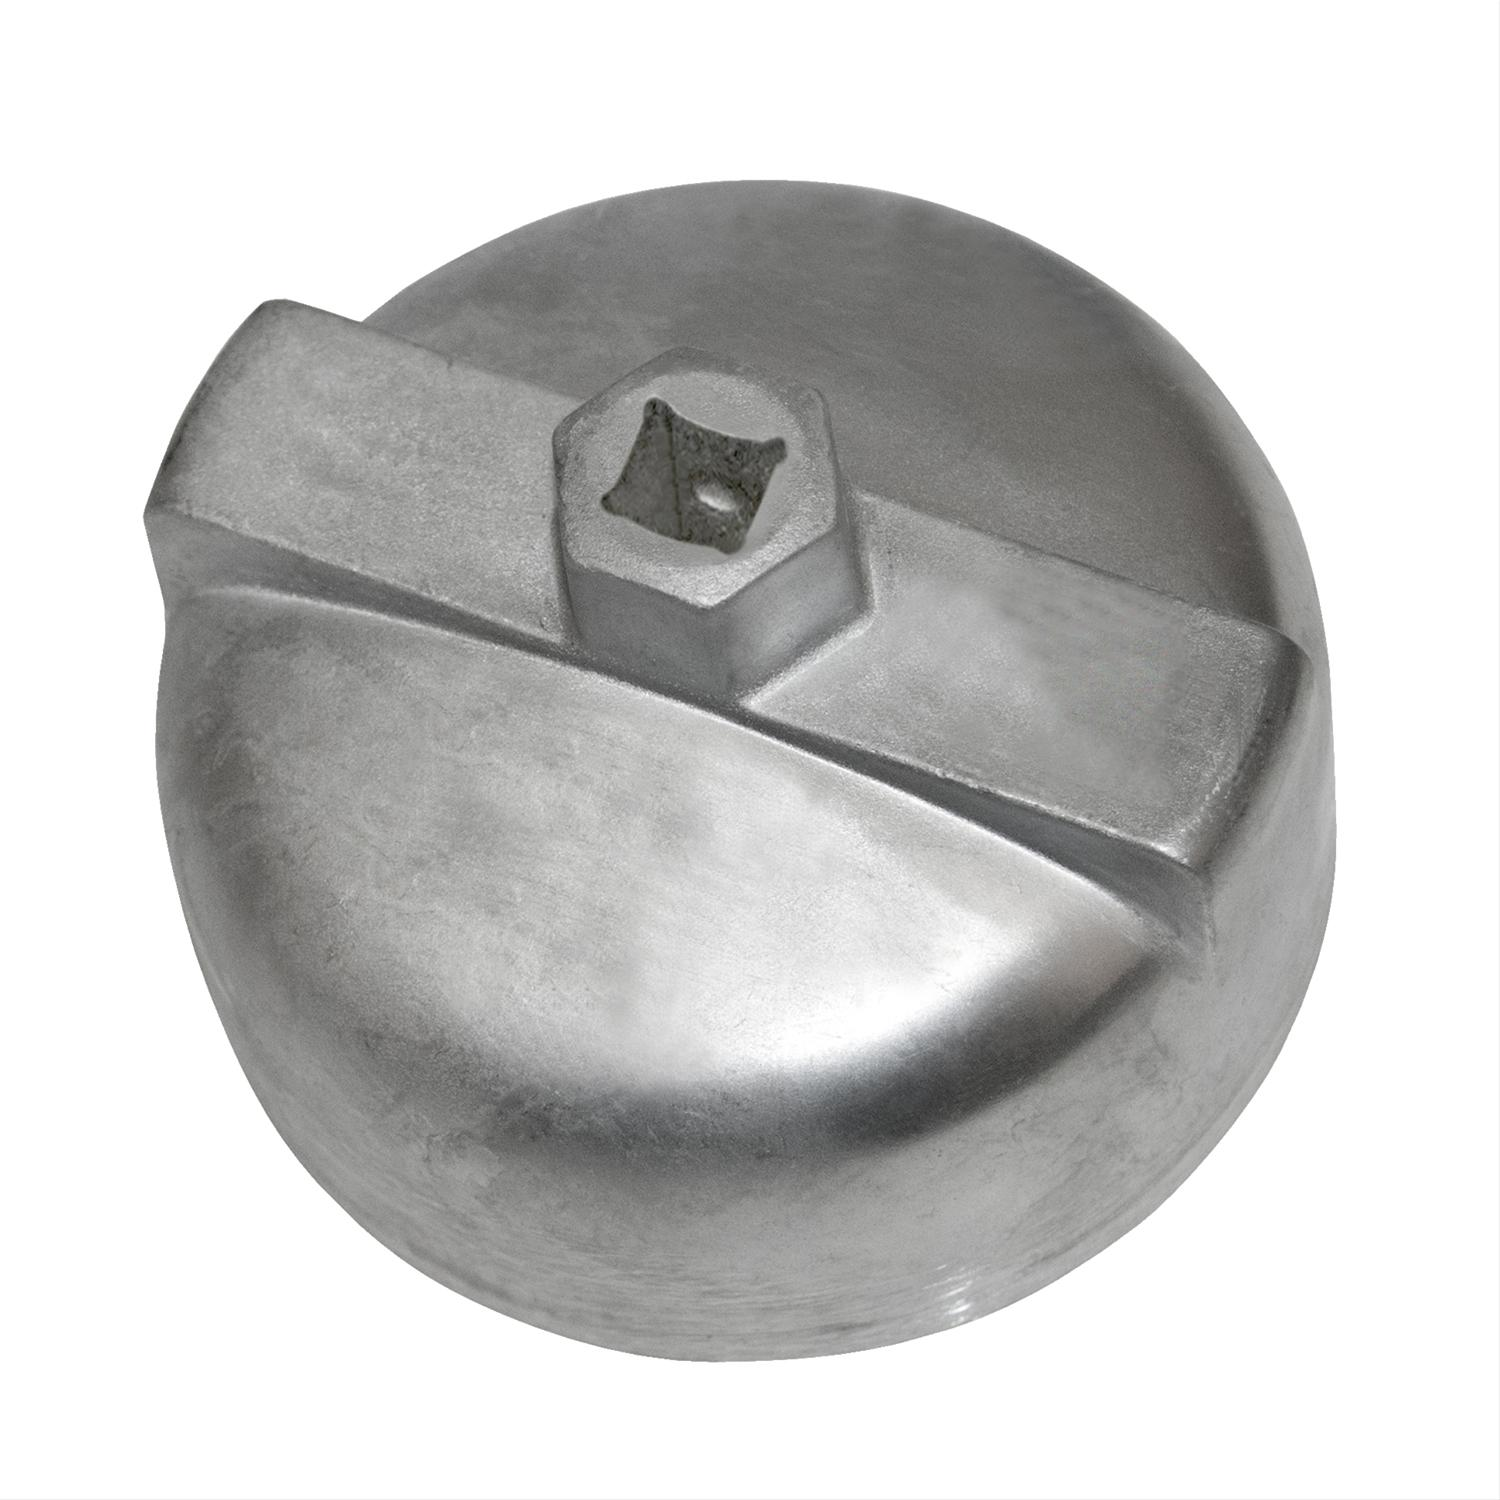 Specialty Tools Volvo/BMW Oil Filter Cap Wrench